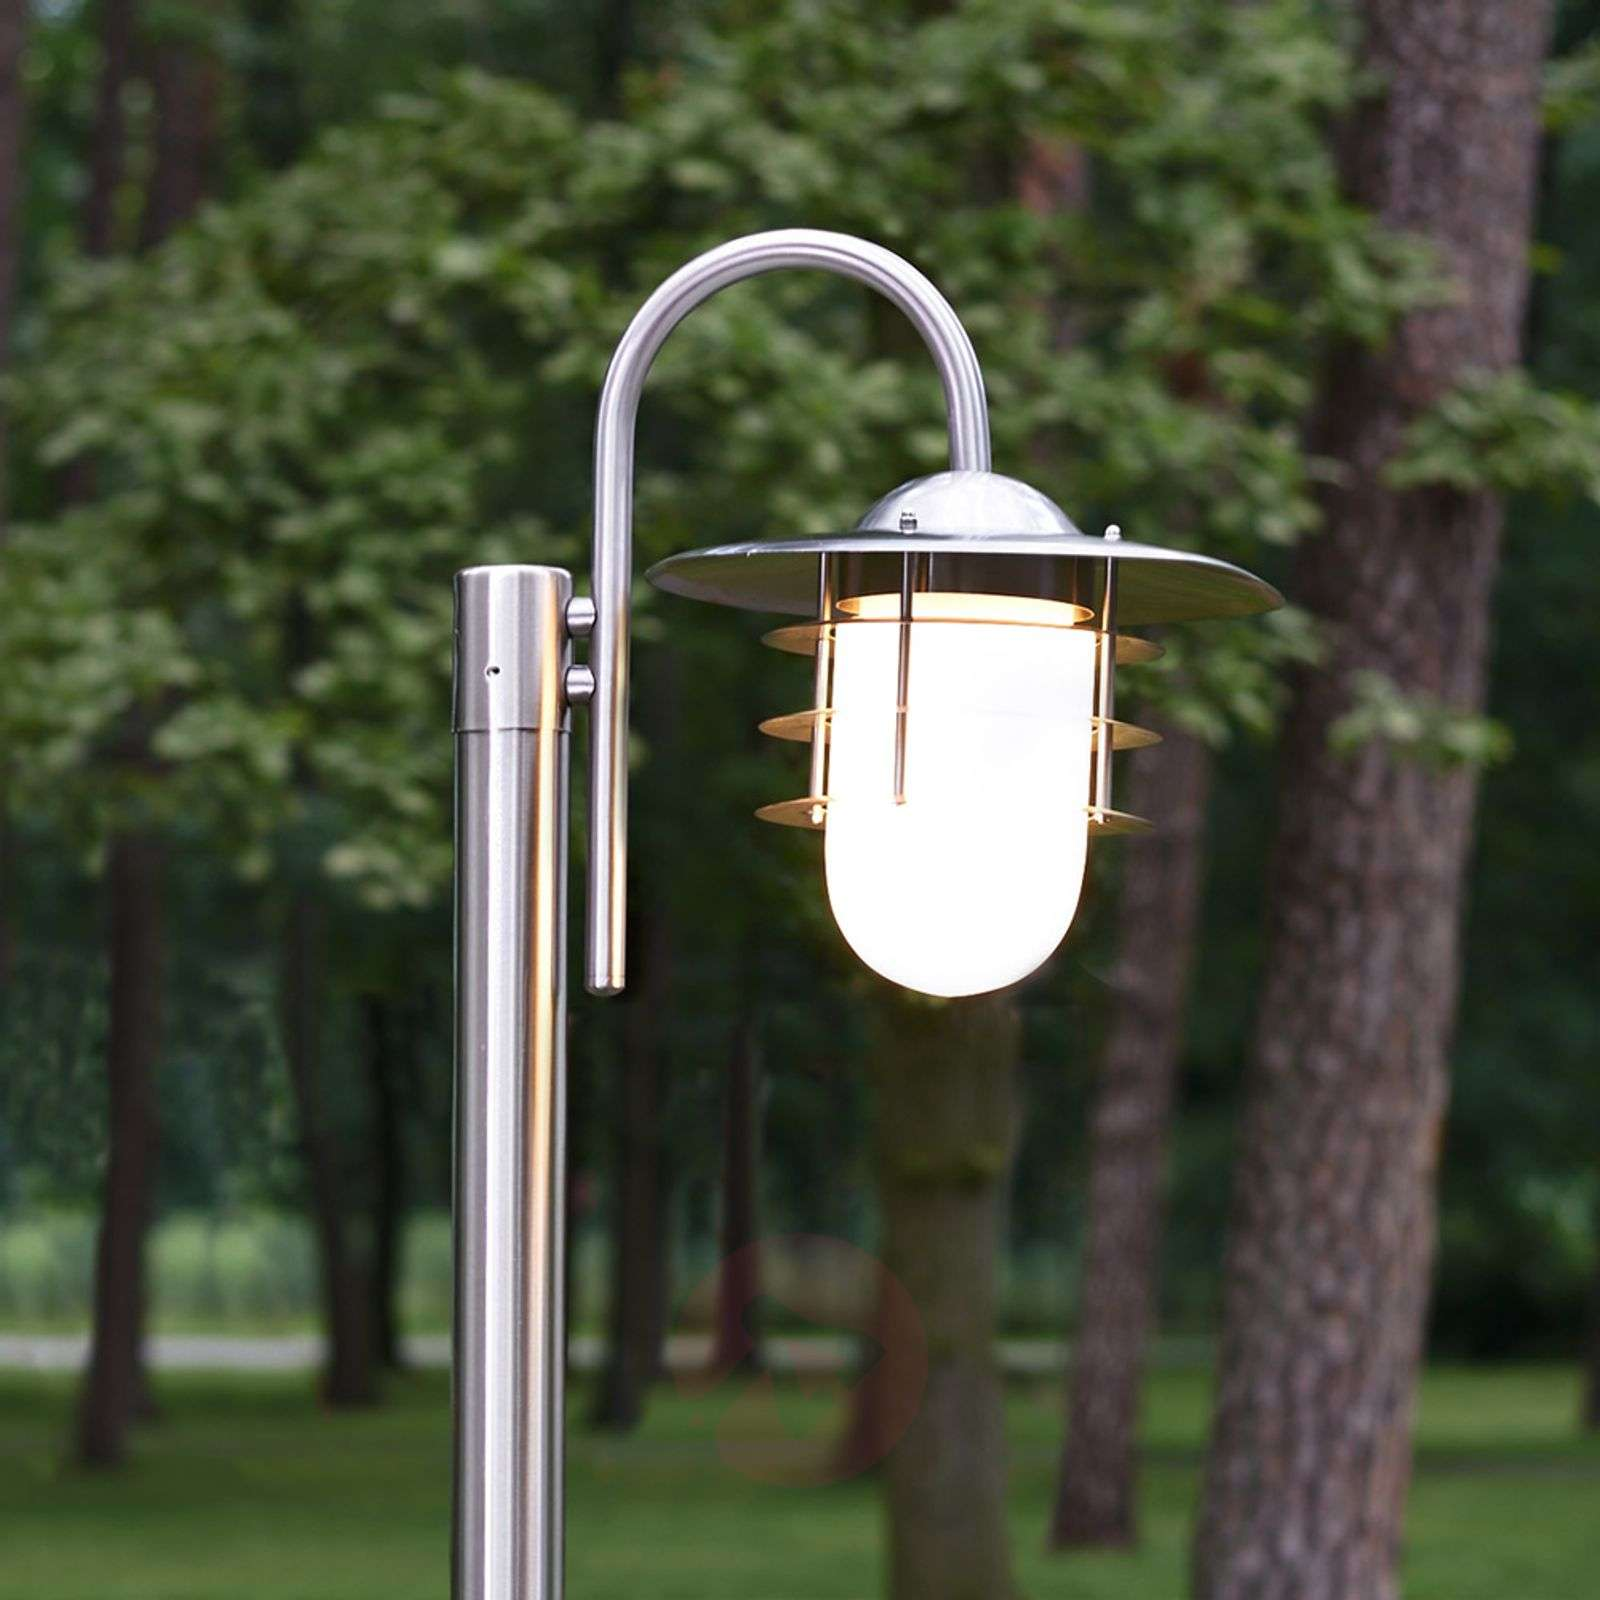 Mian Curved Mast Lamp Made of Stainless Steel-9960027-01